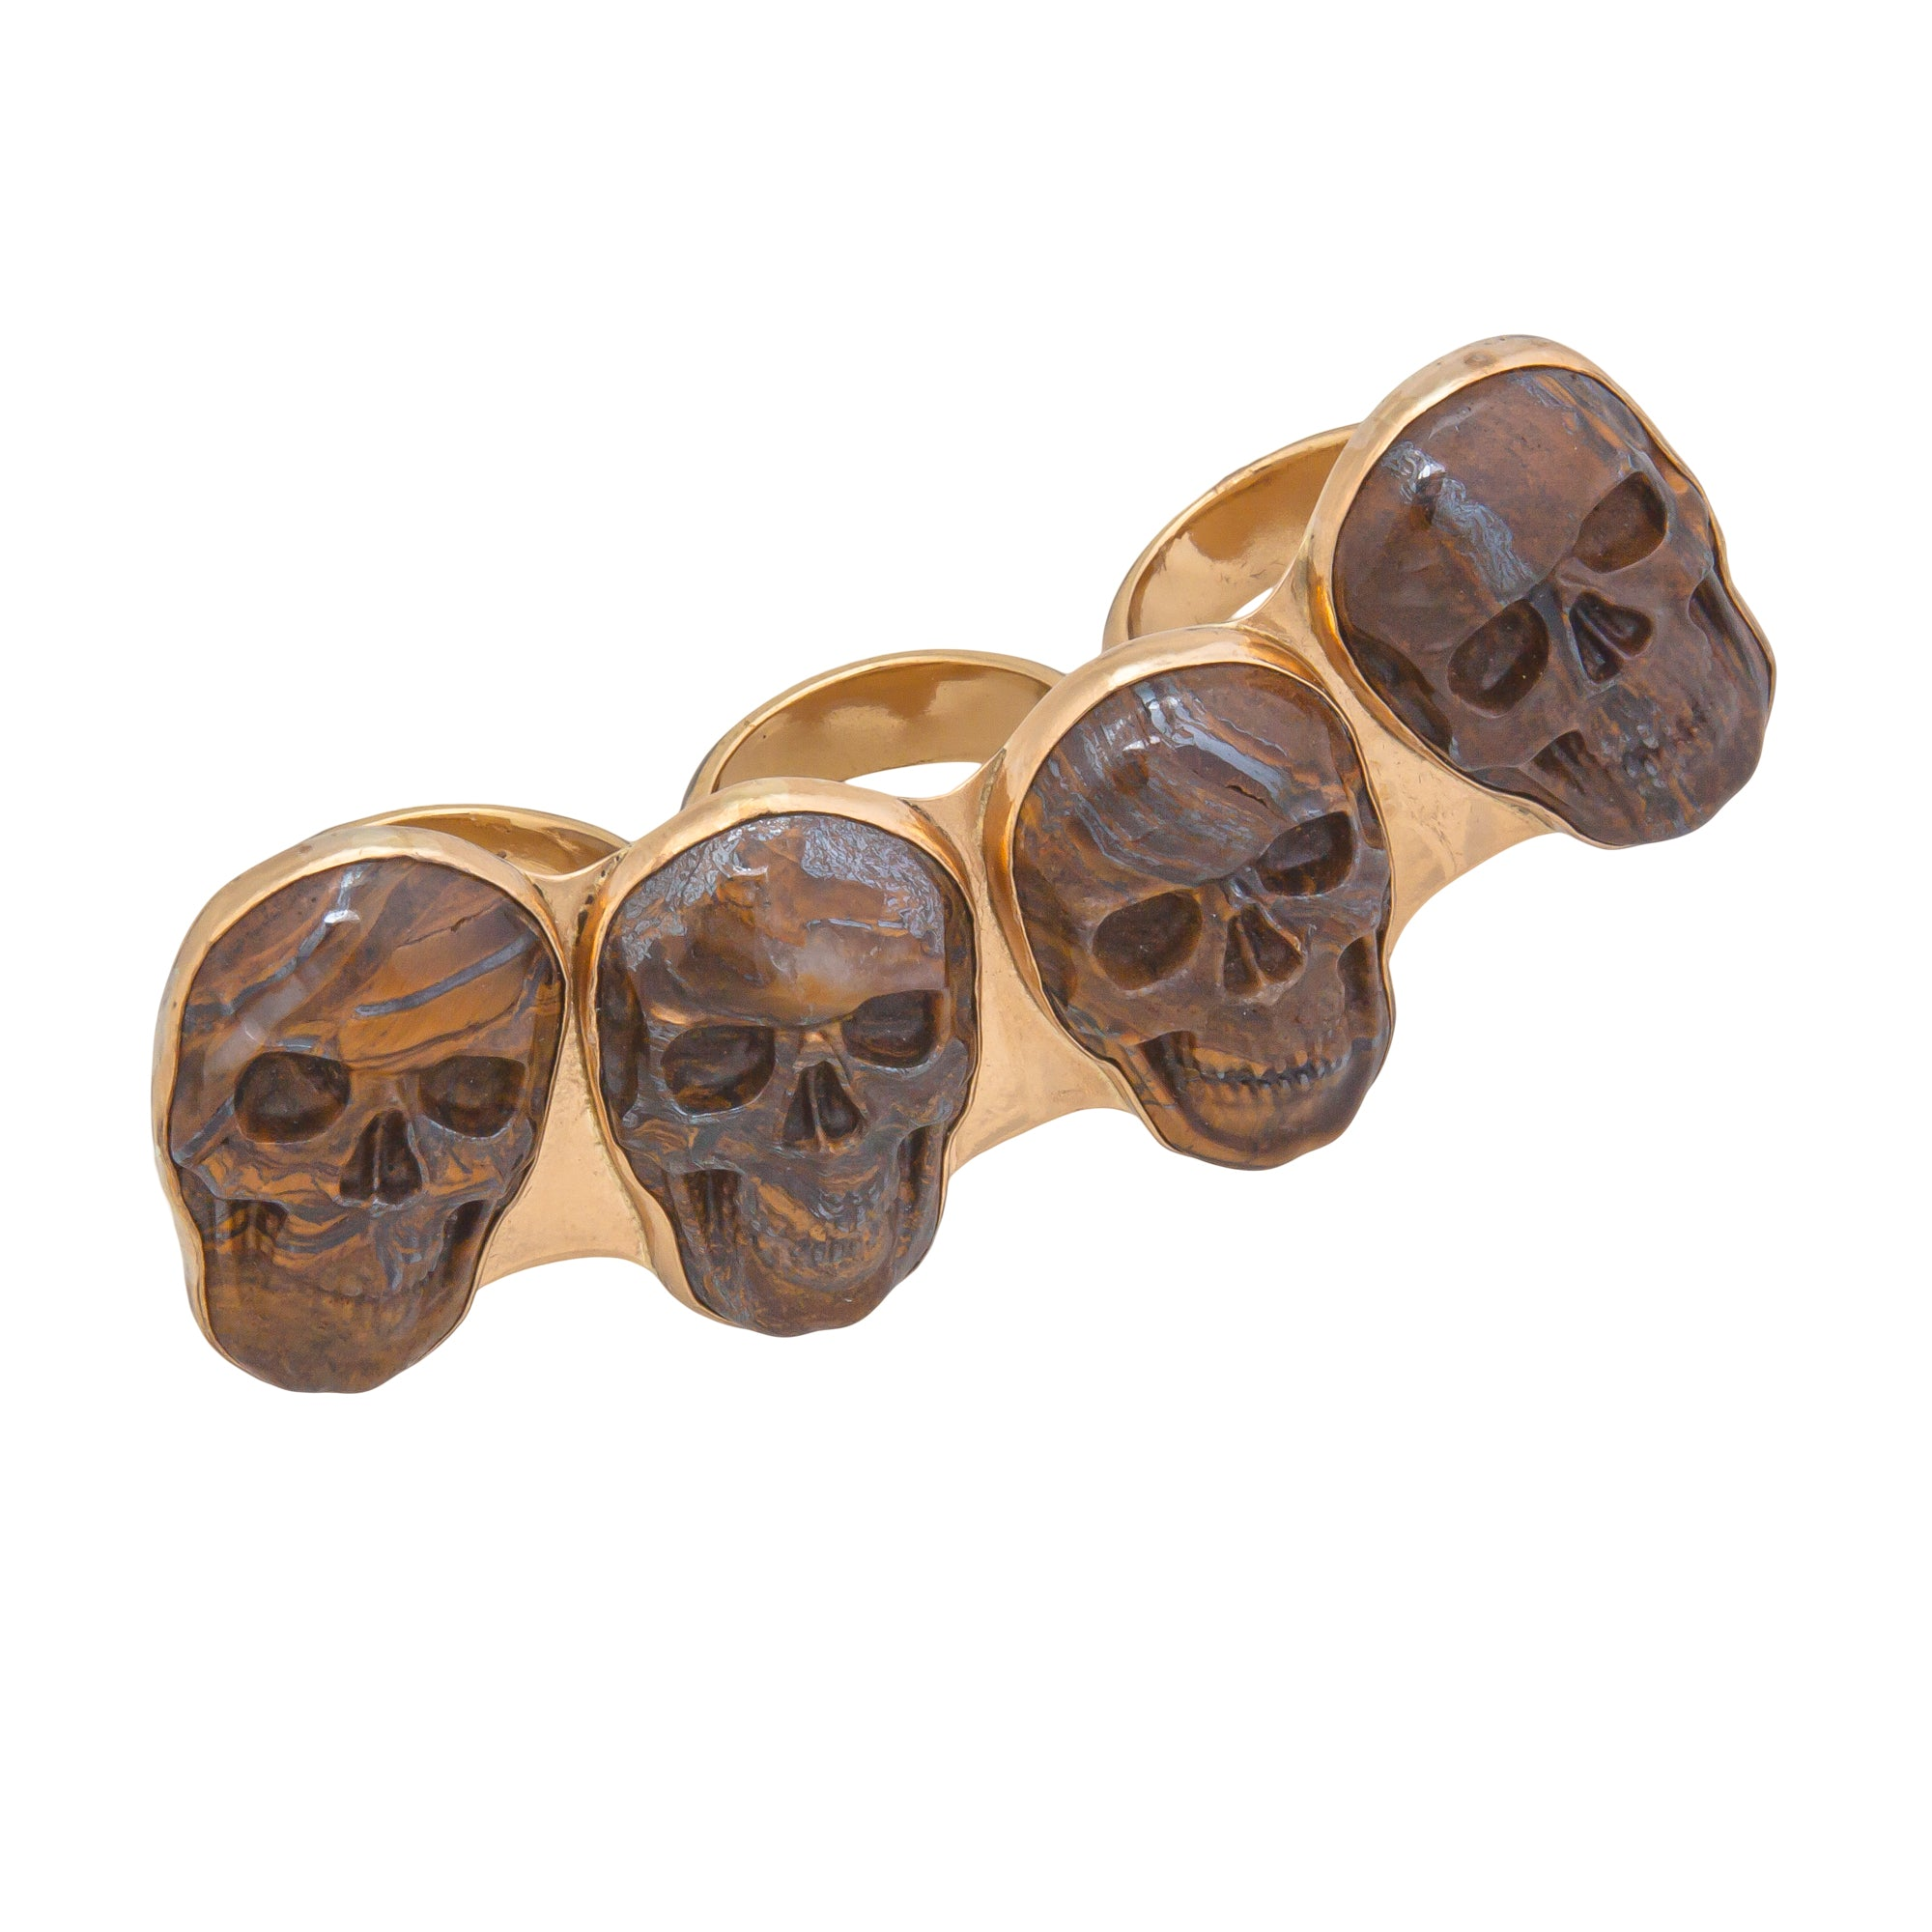 Alchemia Tiger Eye Skull Knuckle Ring - Adjustable | Charles Albert Jewelry